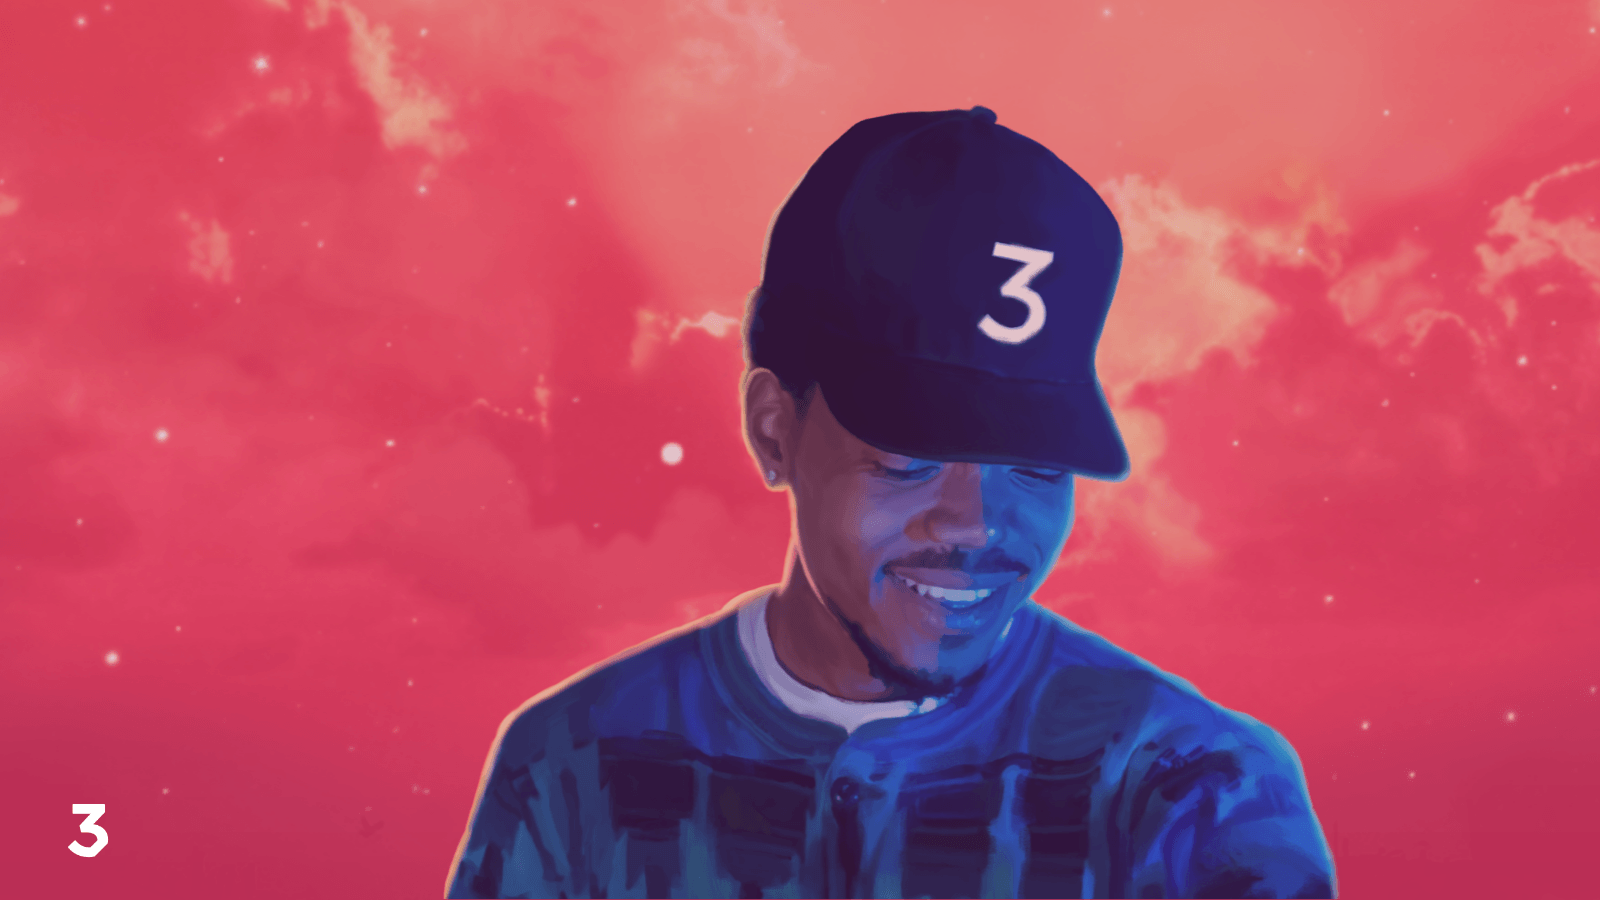 Coloring Book Wallpaper Chance : Chance The Rapper Wallpapers Wallpaper Cave